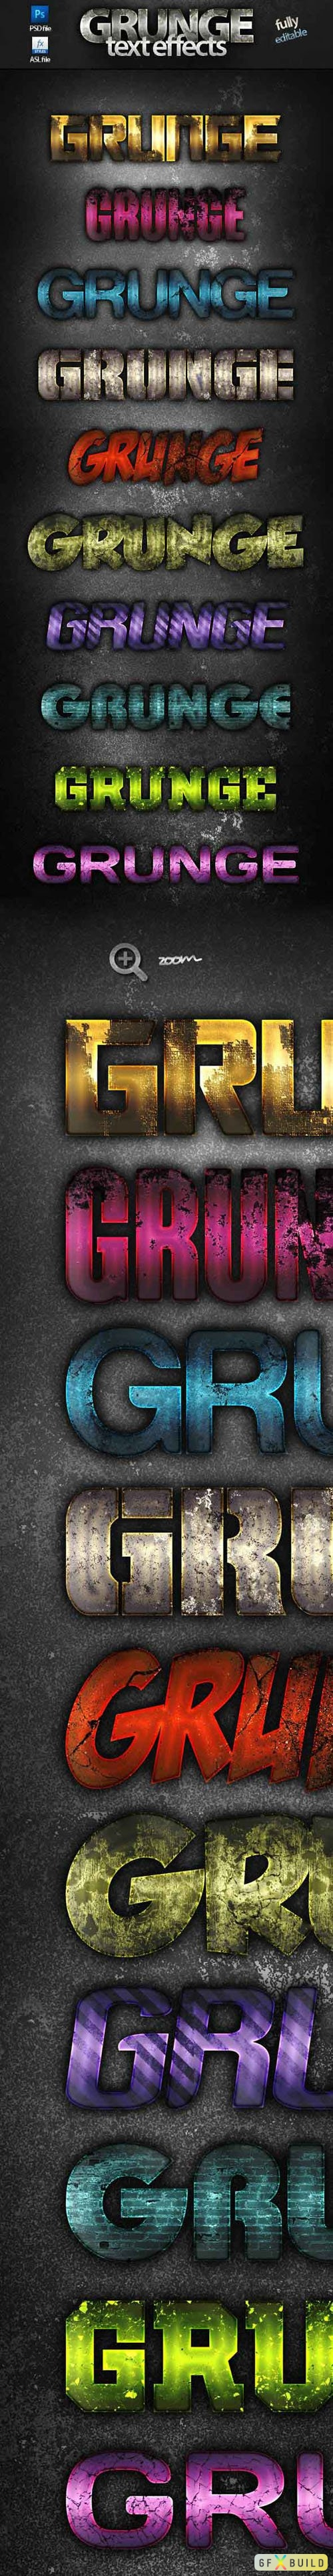 10 Grunge Text Effects Styles for Photoshop